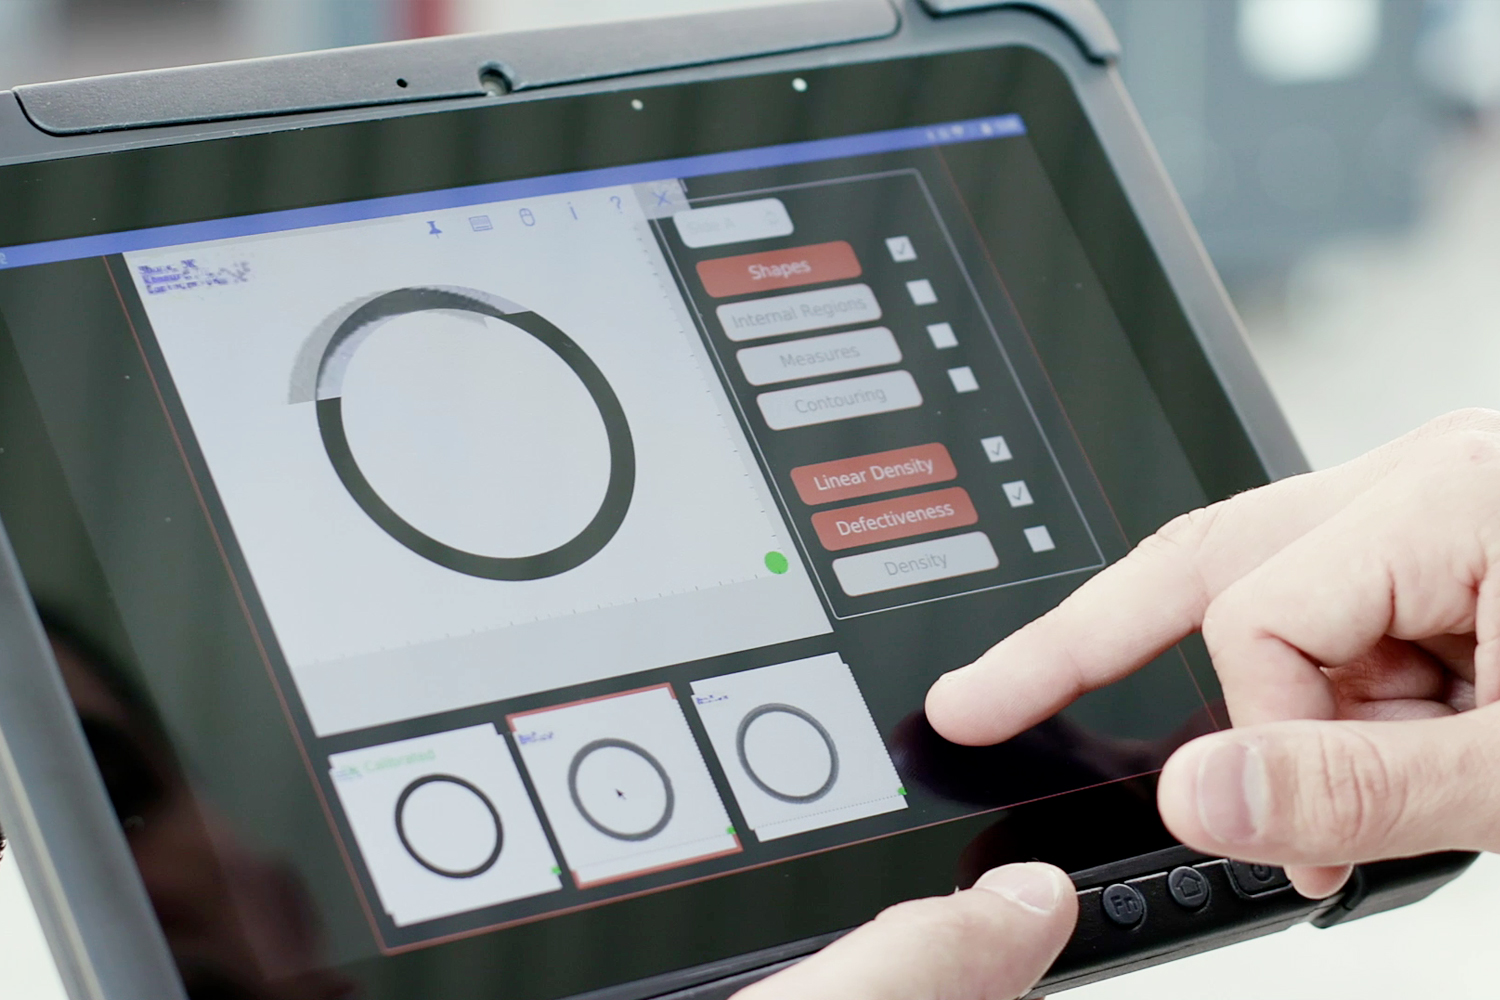 touch screen controls for digital imaging software by Doss Visual Solutions, USA